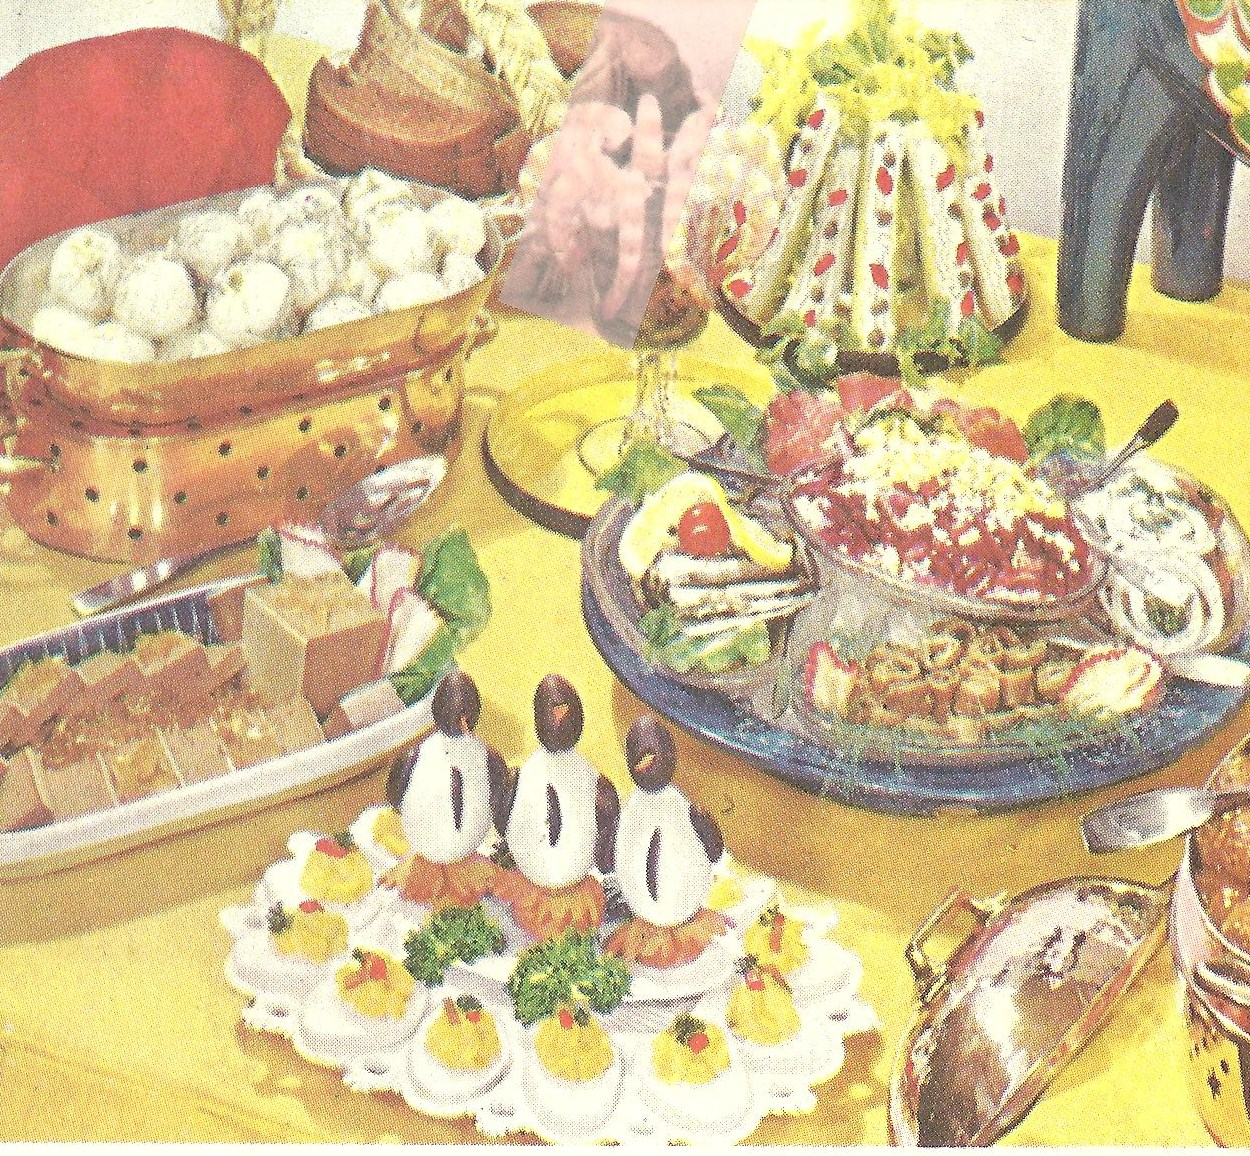 lots going on here celery sticks a spread of herring salad liver pate with chunks of aspic all of it is protected by a trio of egg penguins - Buffet Retro Cuisine